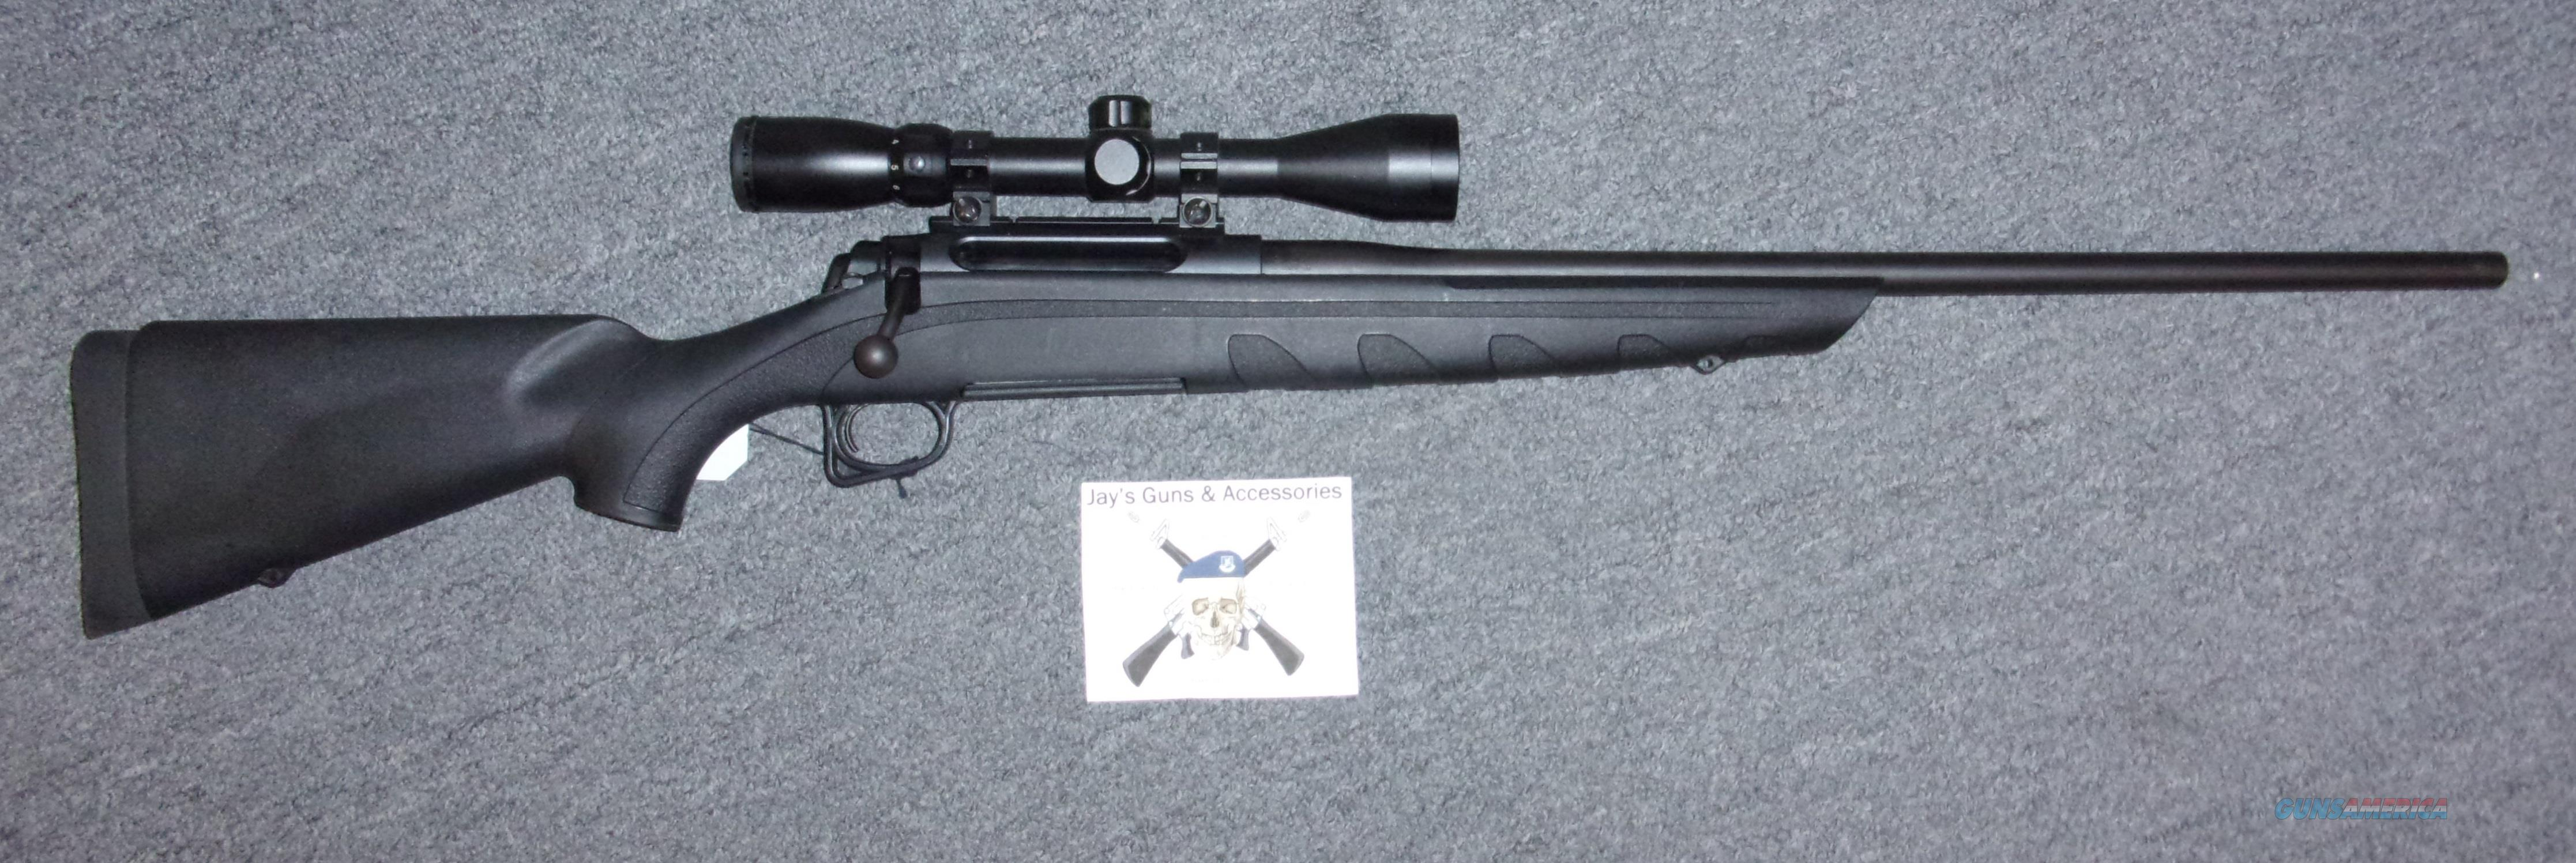 Remington 770 w/Scope  Guns > Rifles > Remington Rifles - Modern > Bolt Action Non-Model 700 > Tactical